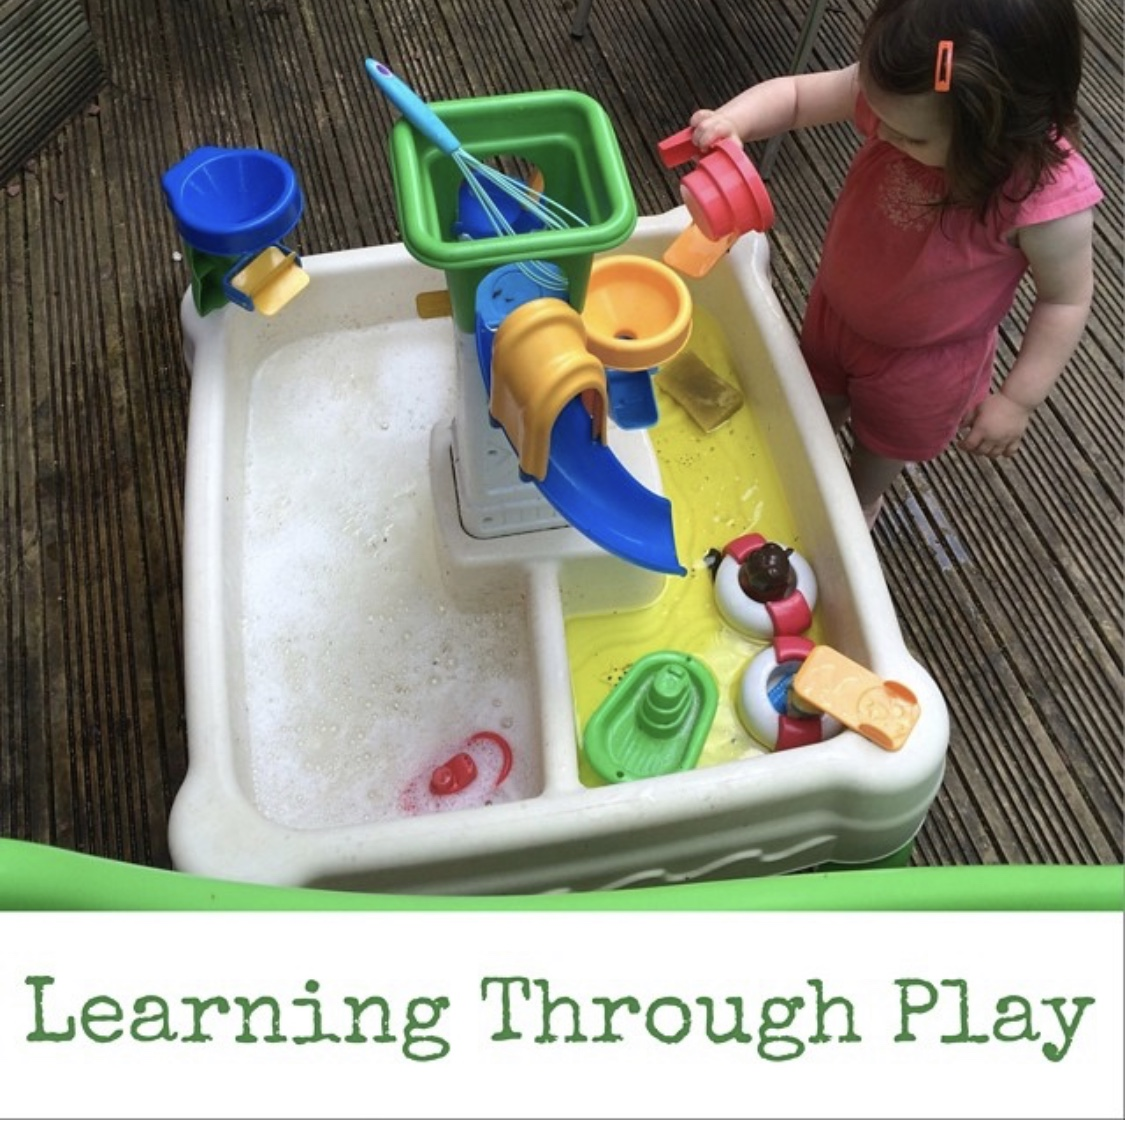 free ideas for Summer fun - clean the garden toys